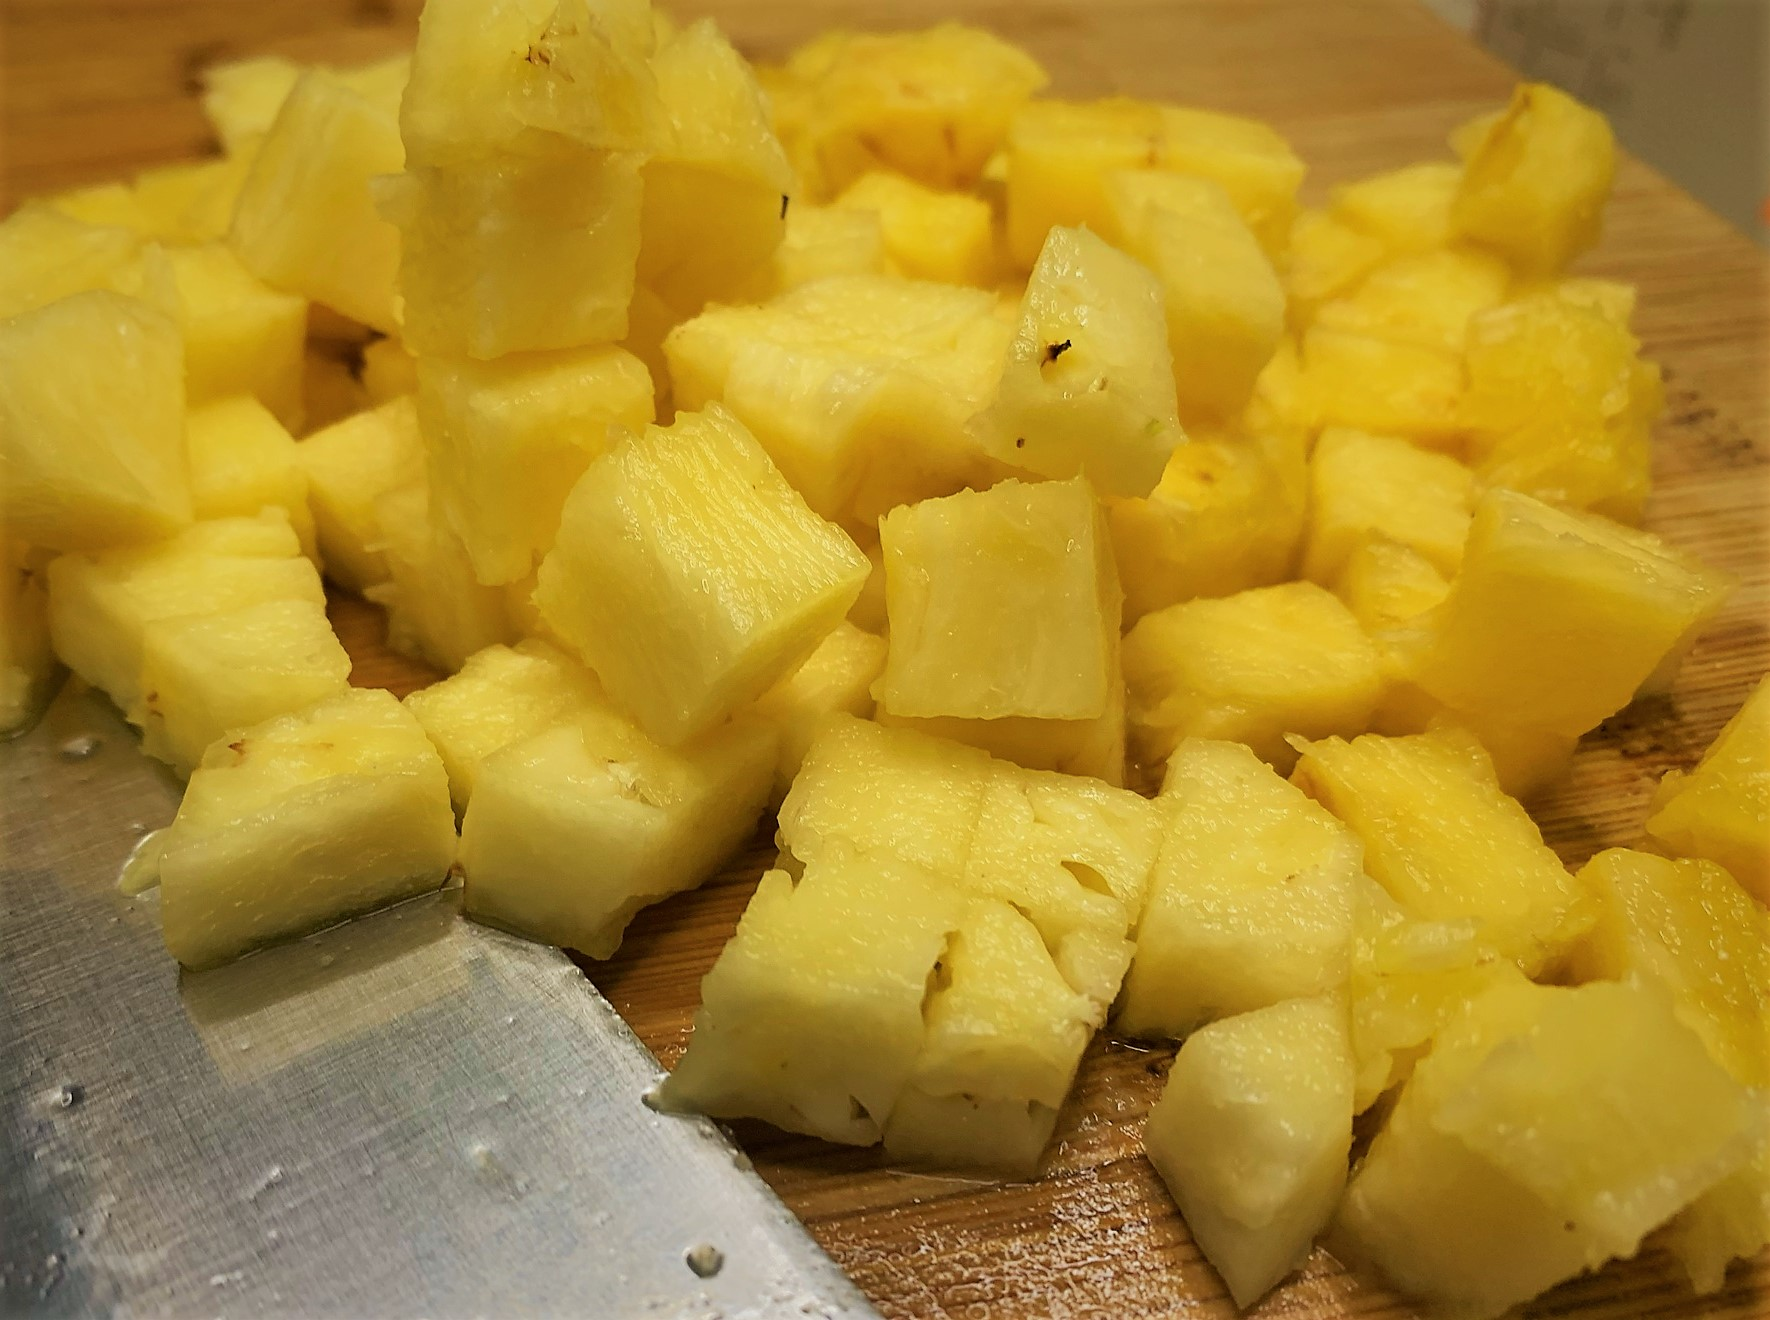 The Diced Fresh Pineapple ready to go in the freezer